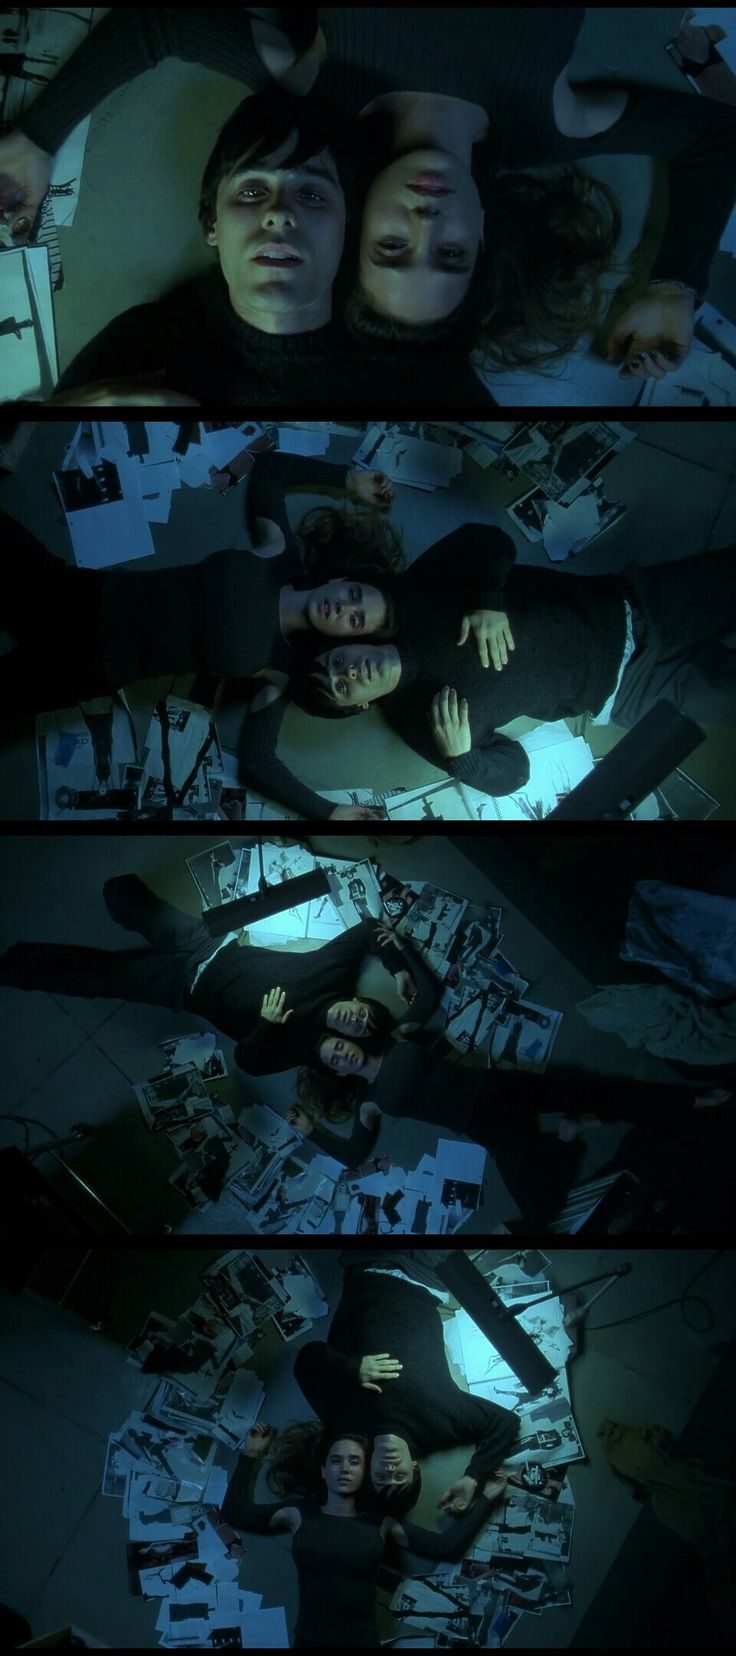 Requiem for a Dream(2000) Directed by Darren Aronofsky.